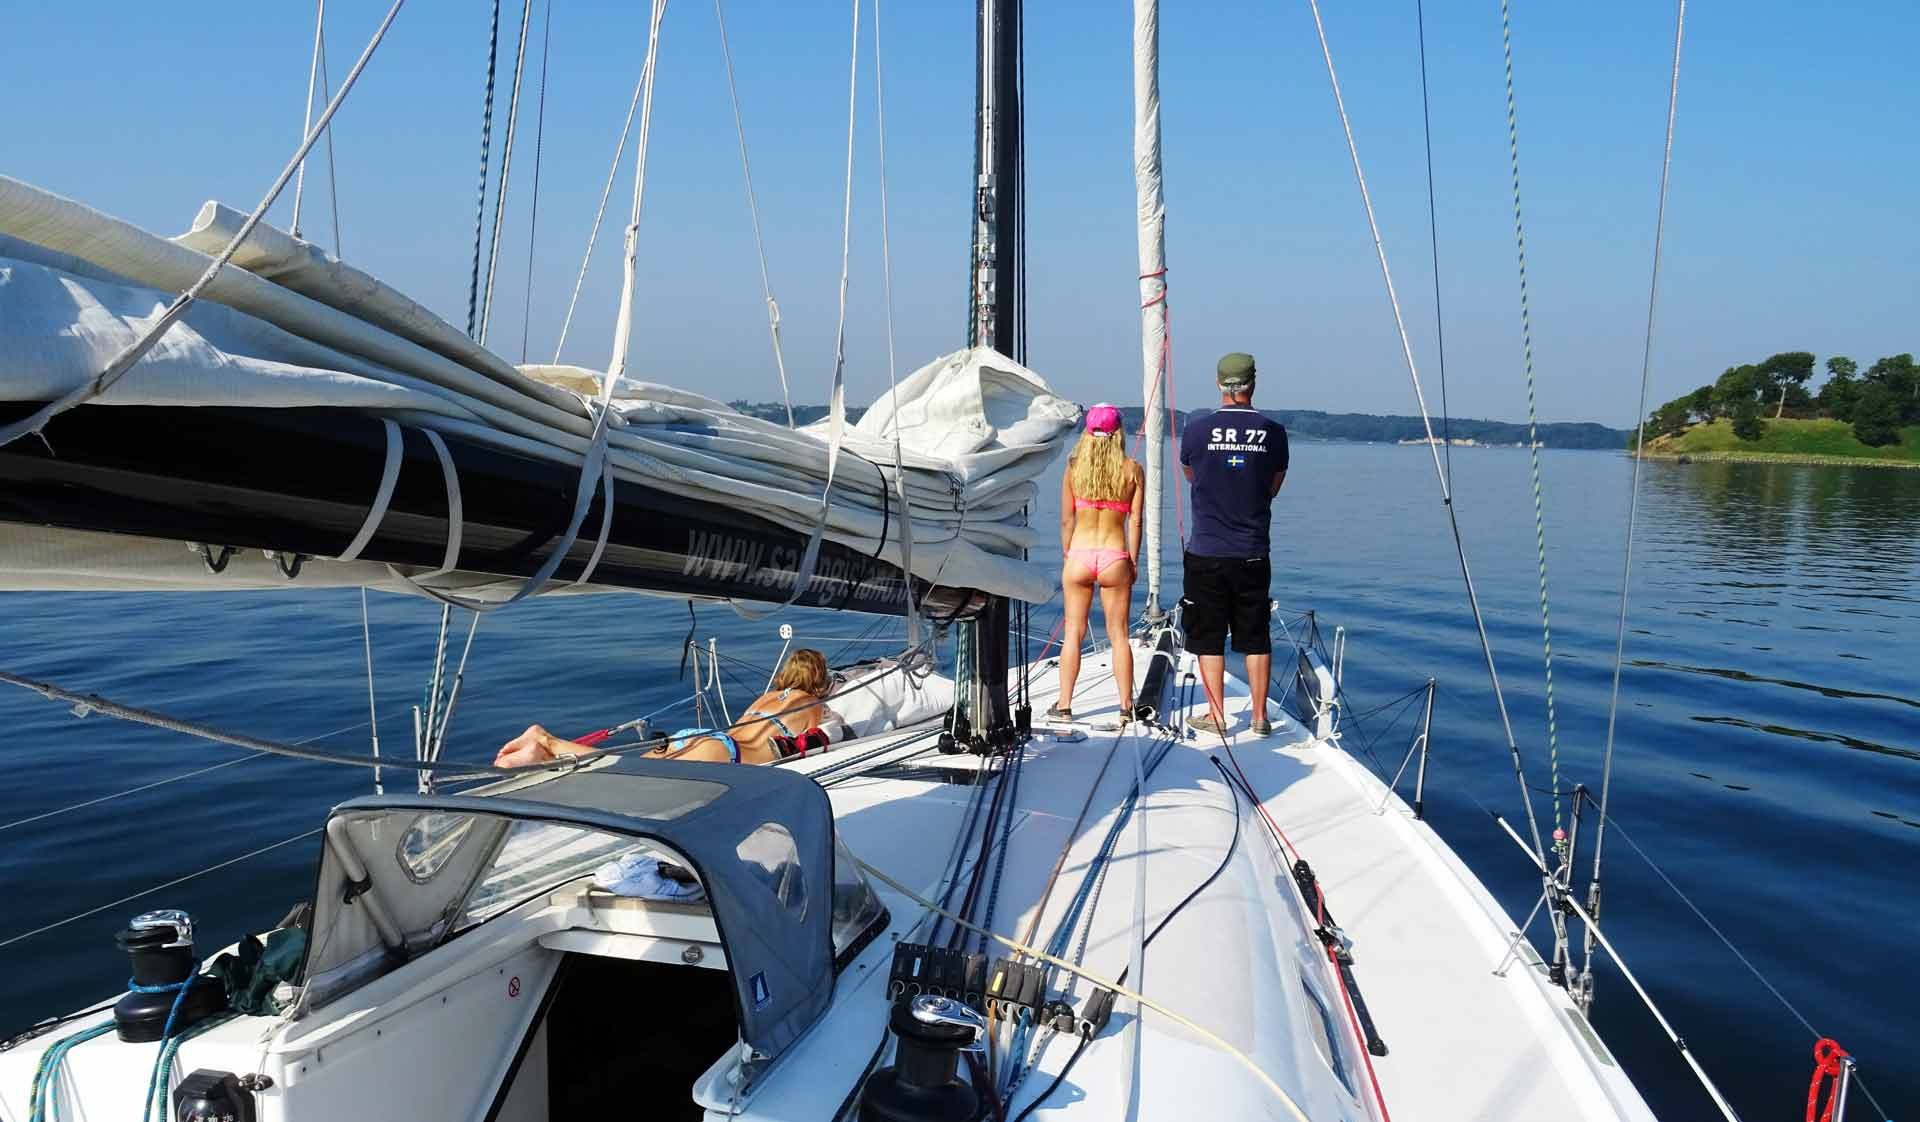 Leaving Middelfart. Instead of Bikinis I´d like to have a view on moving seas